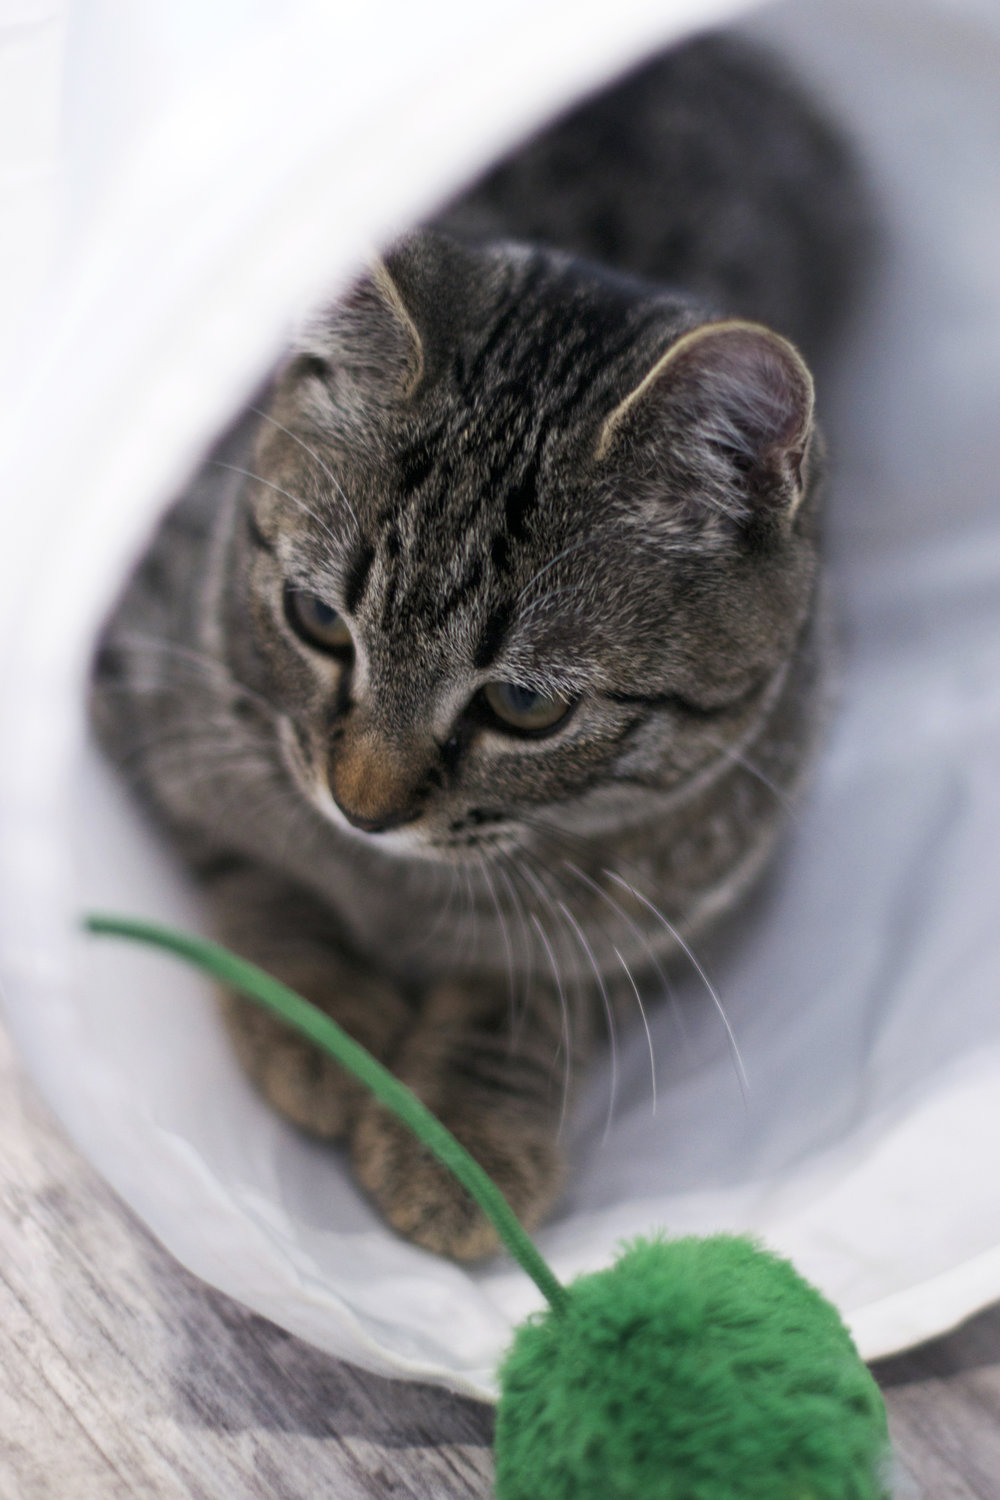 kitty-in-tube-with-green-ball.jpg